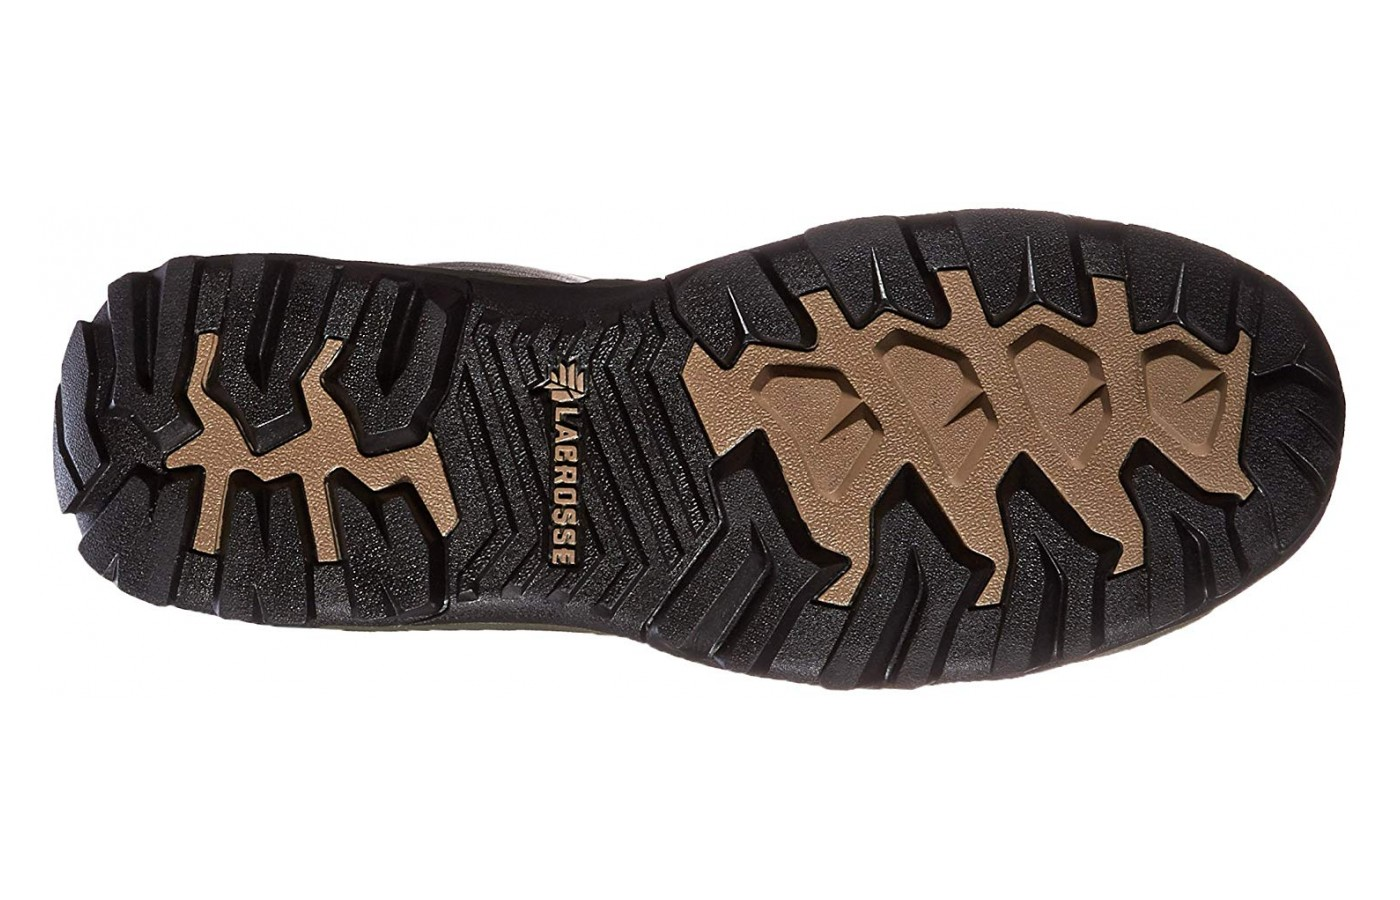 The tread of the Lacrosse Alphaburly Pro is designed so debris slides off the bottom of the boot.